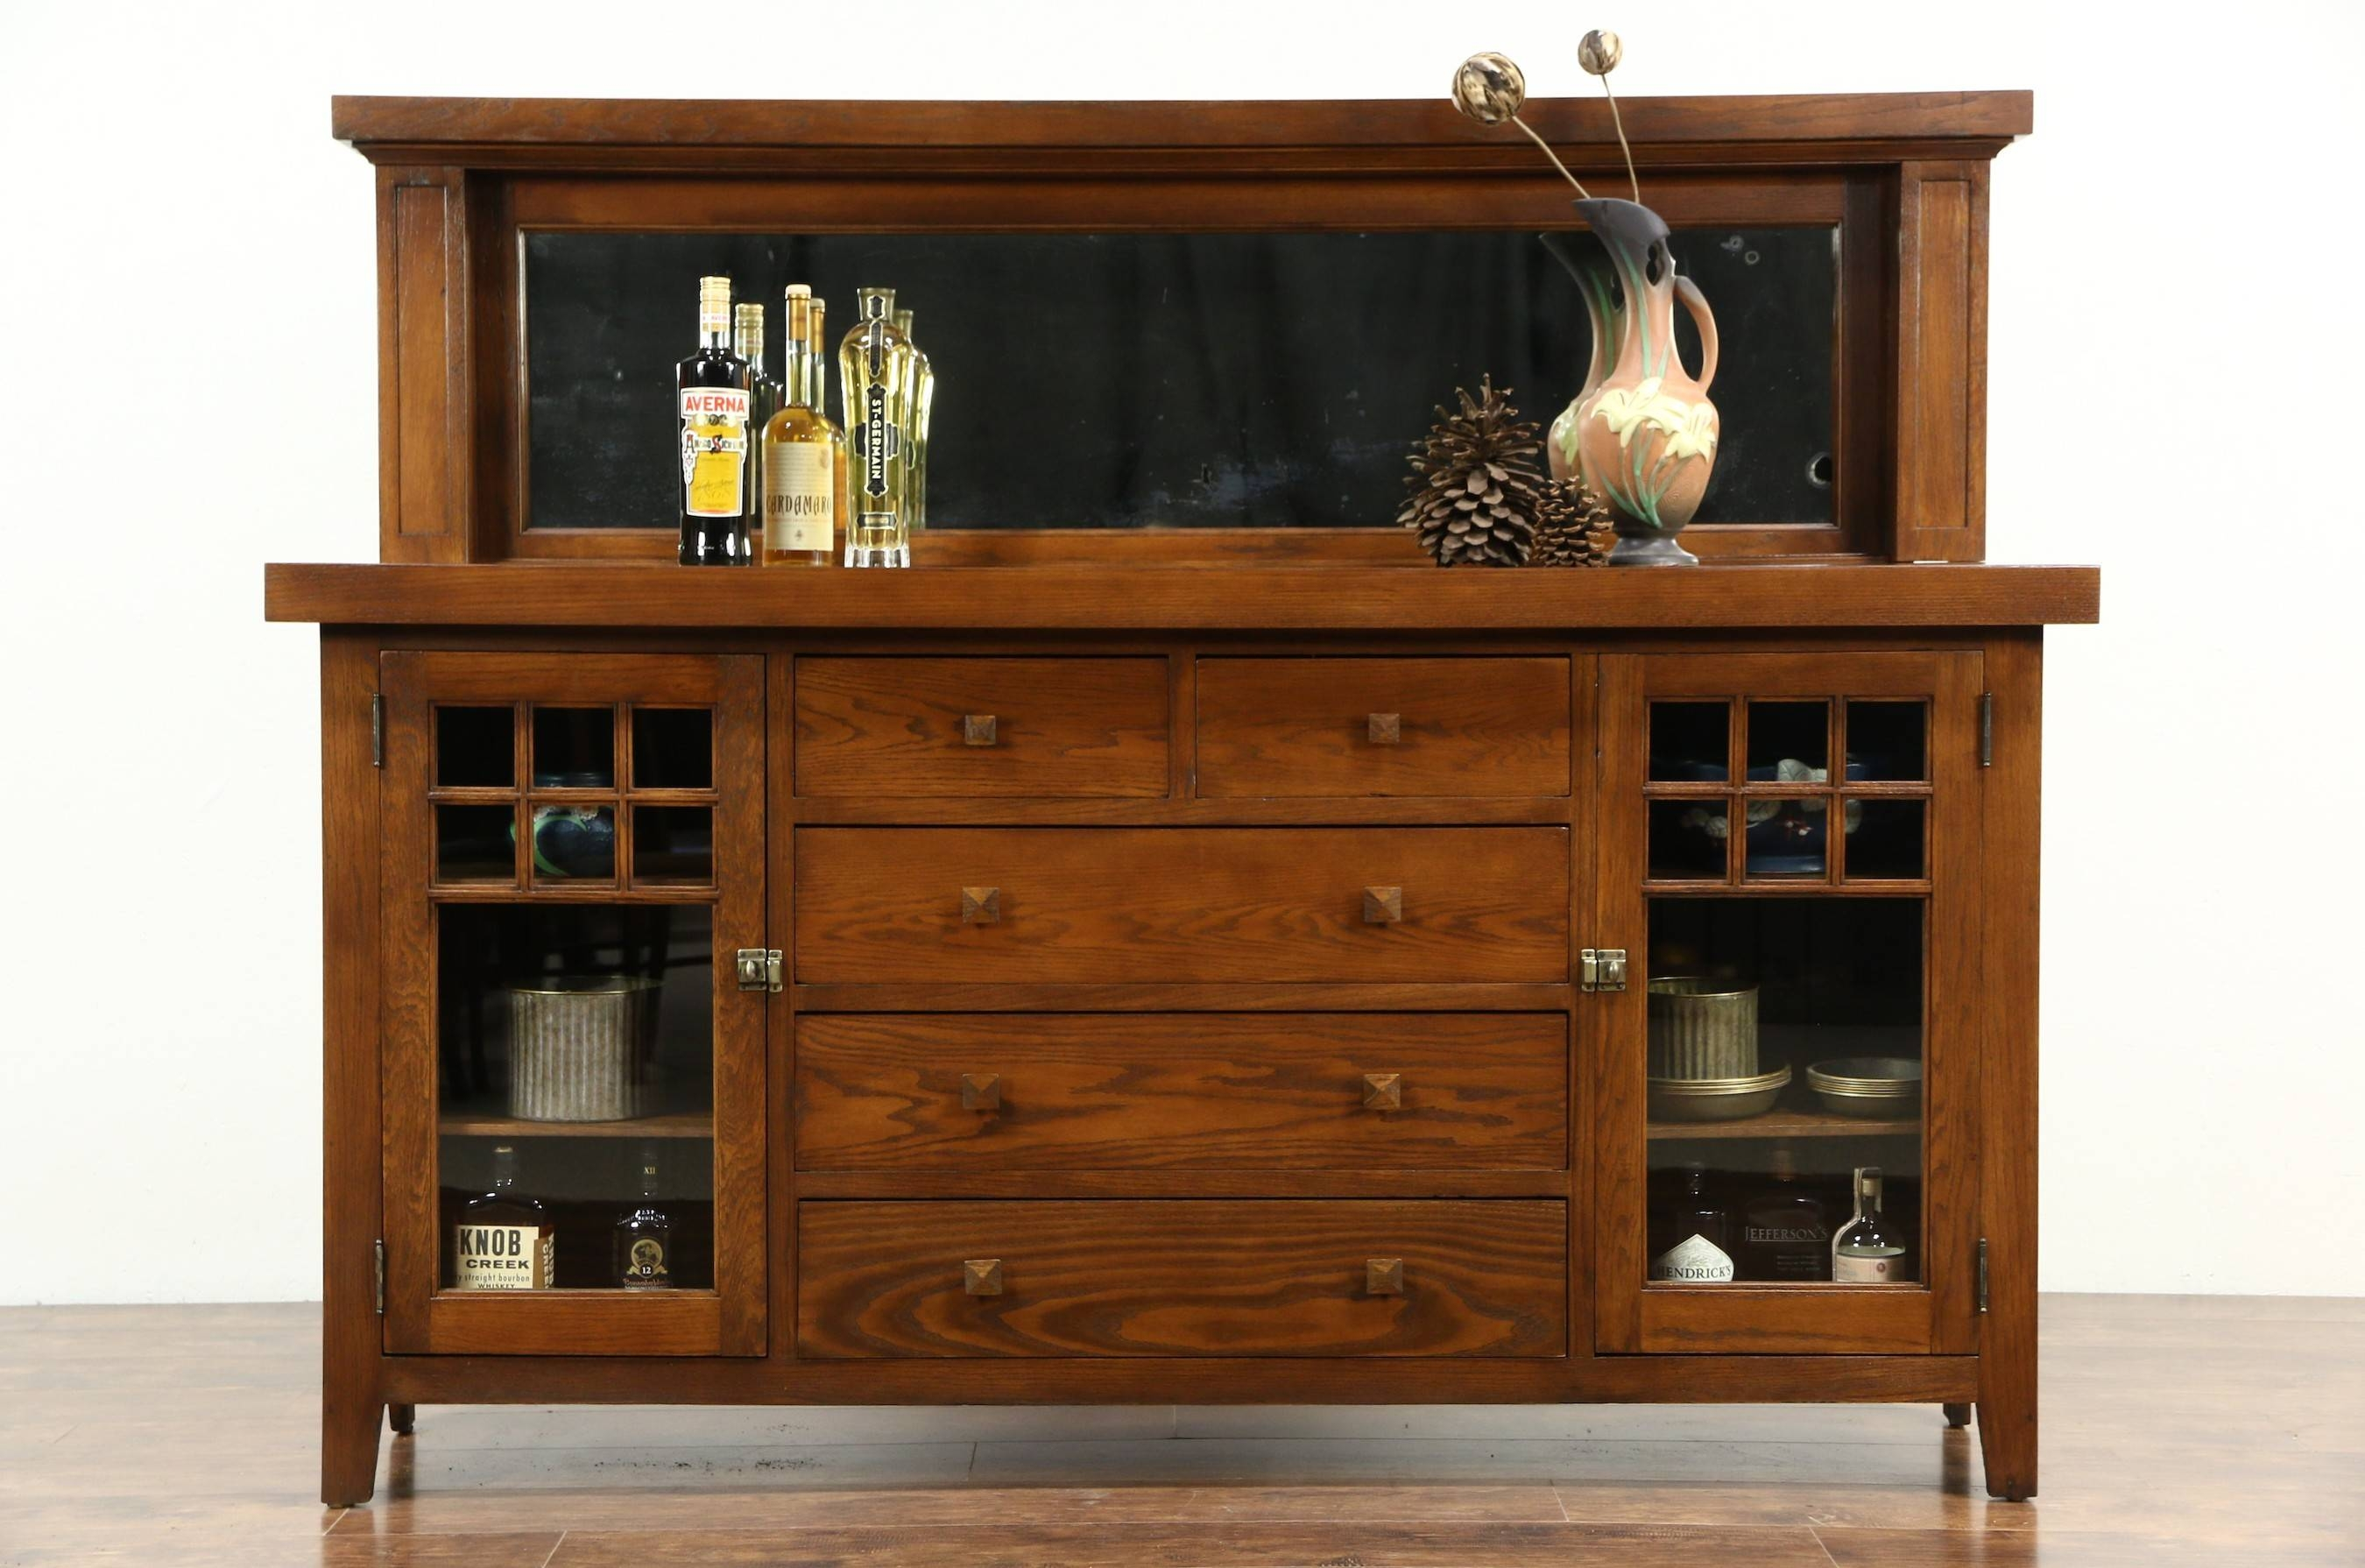 Sold - Arts & Crafts Mission Oak 1900 Antique Craftsman Sideboard pertaining to Mission Sideboards (Image 12 of 15)